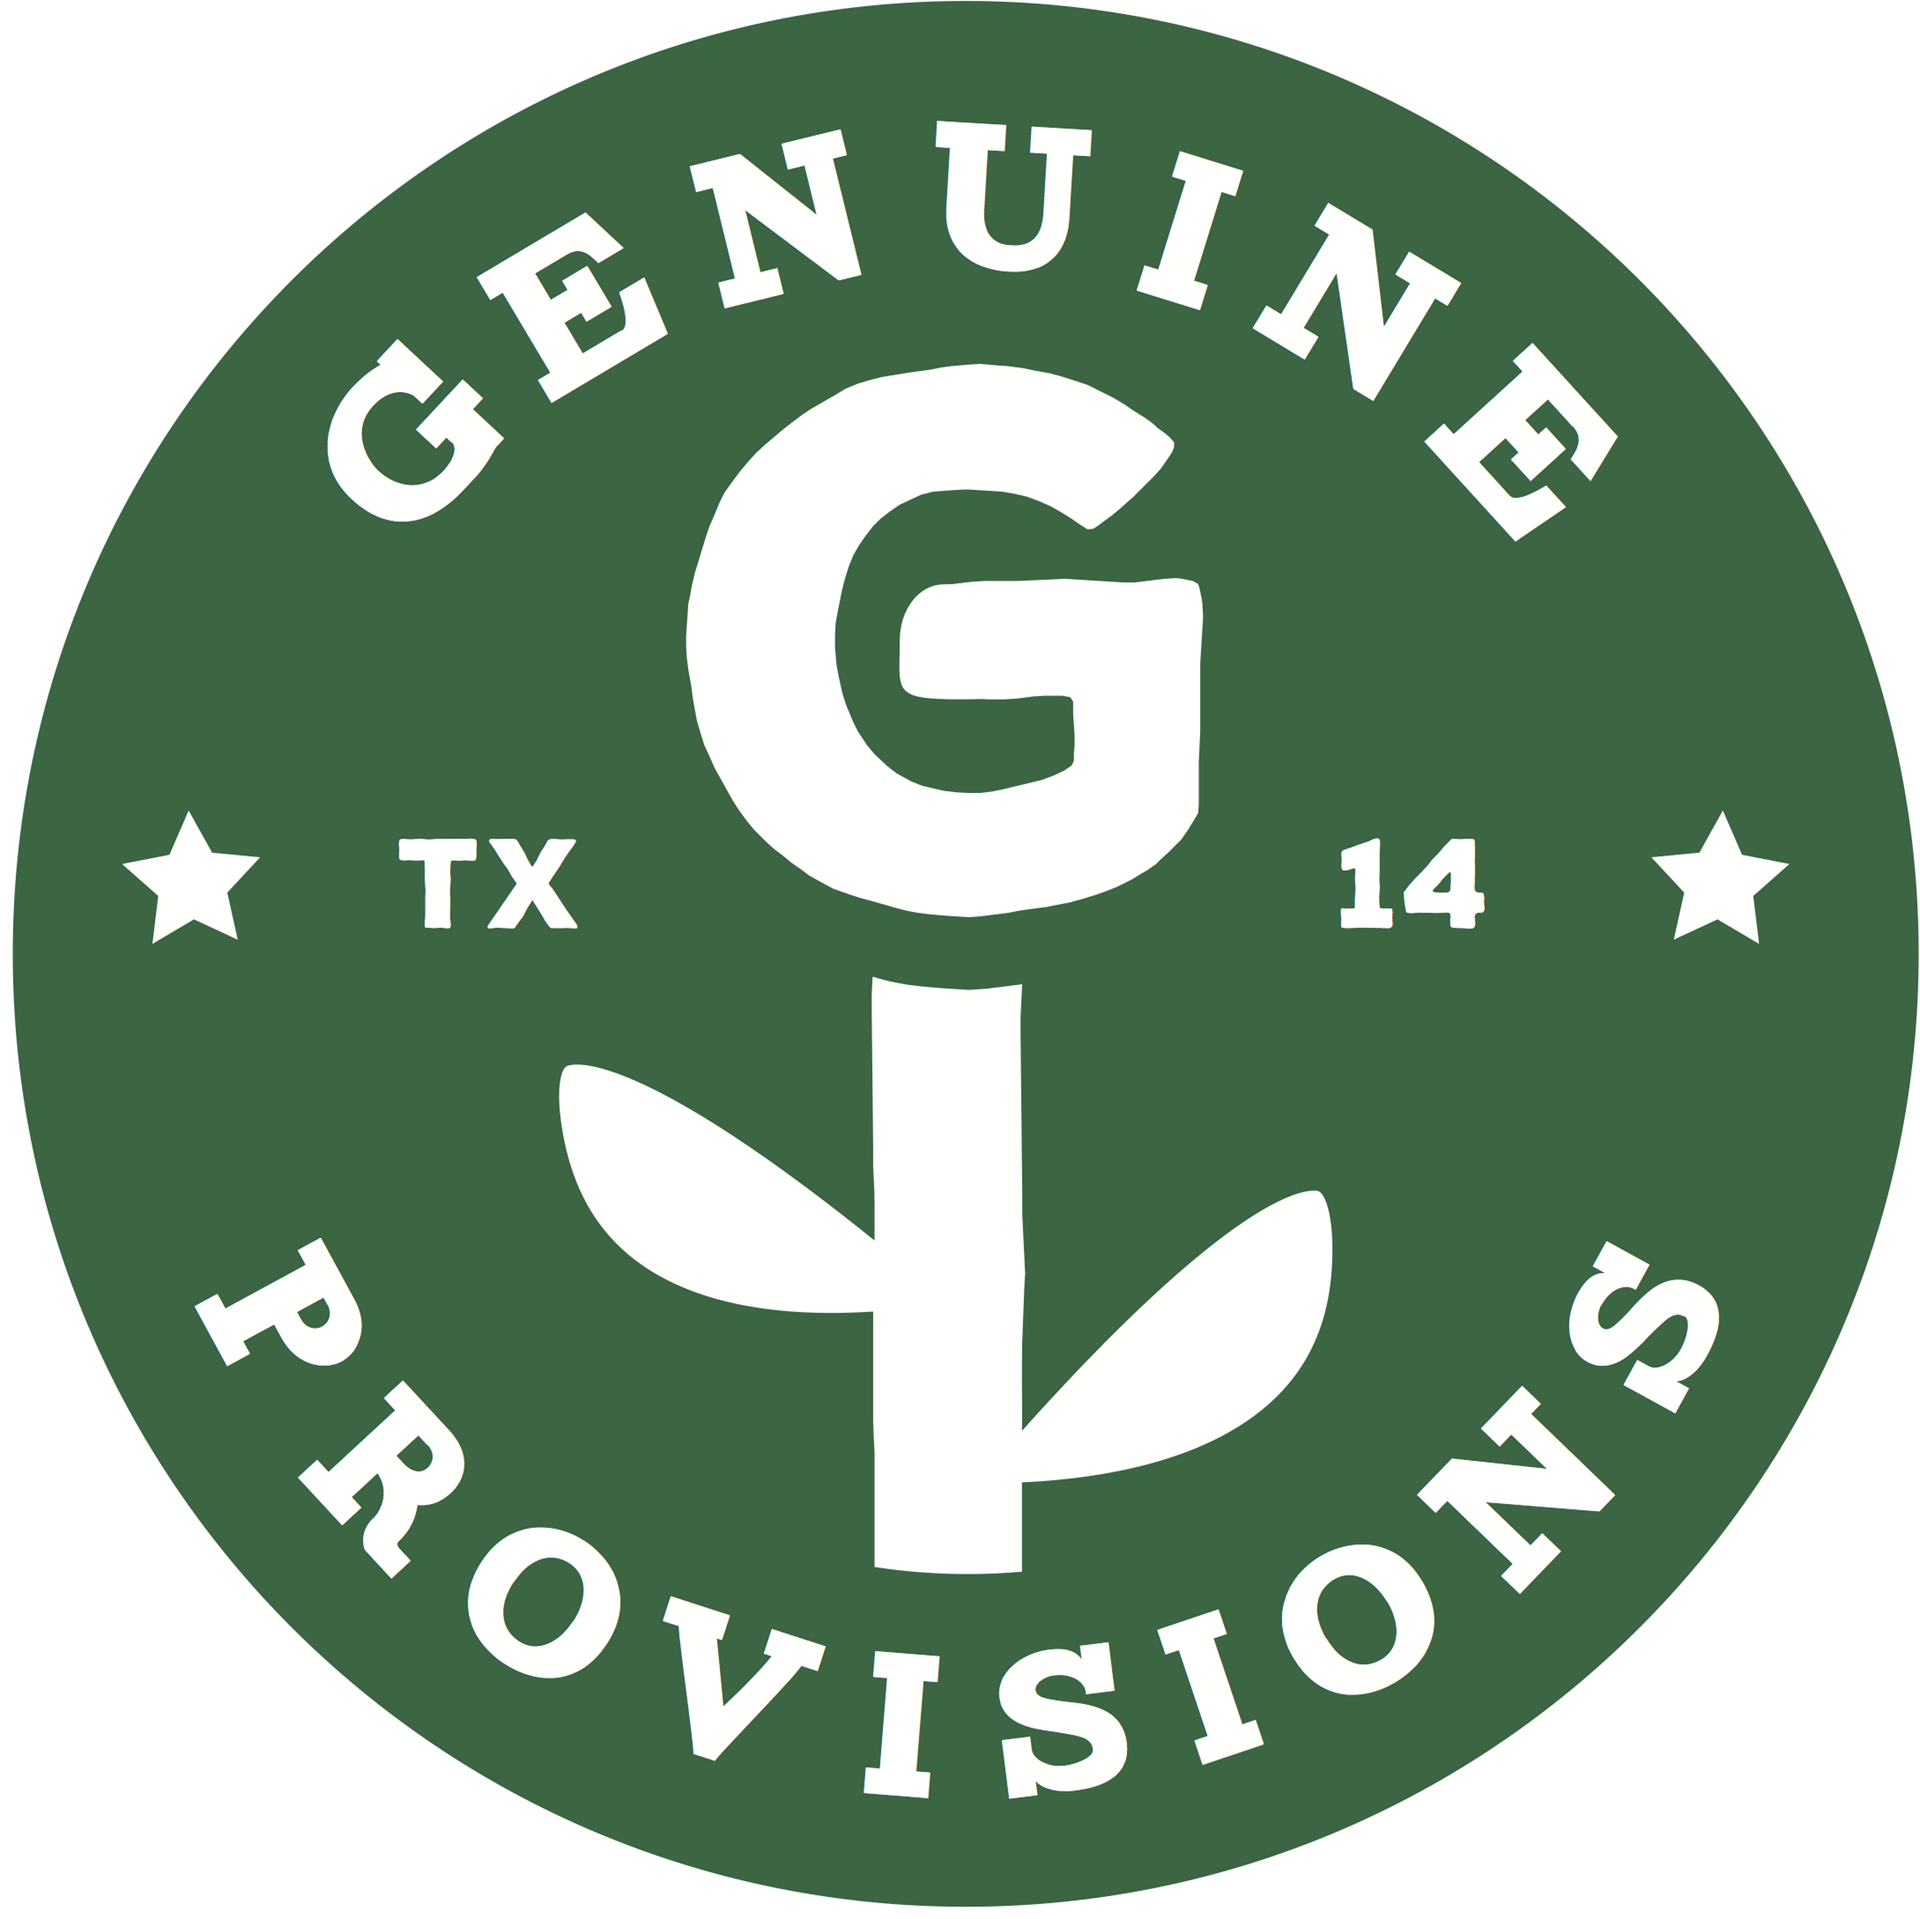 GROW North Texas - Genuine Provisions